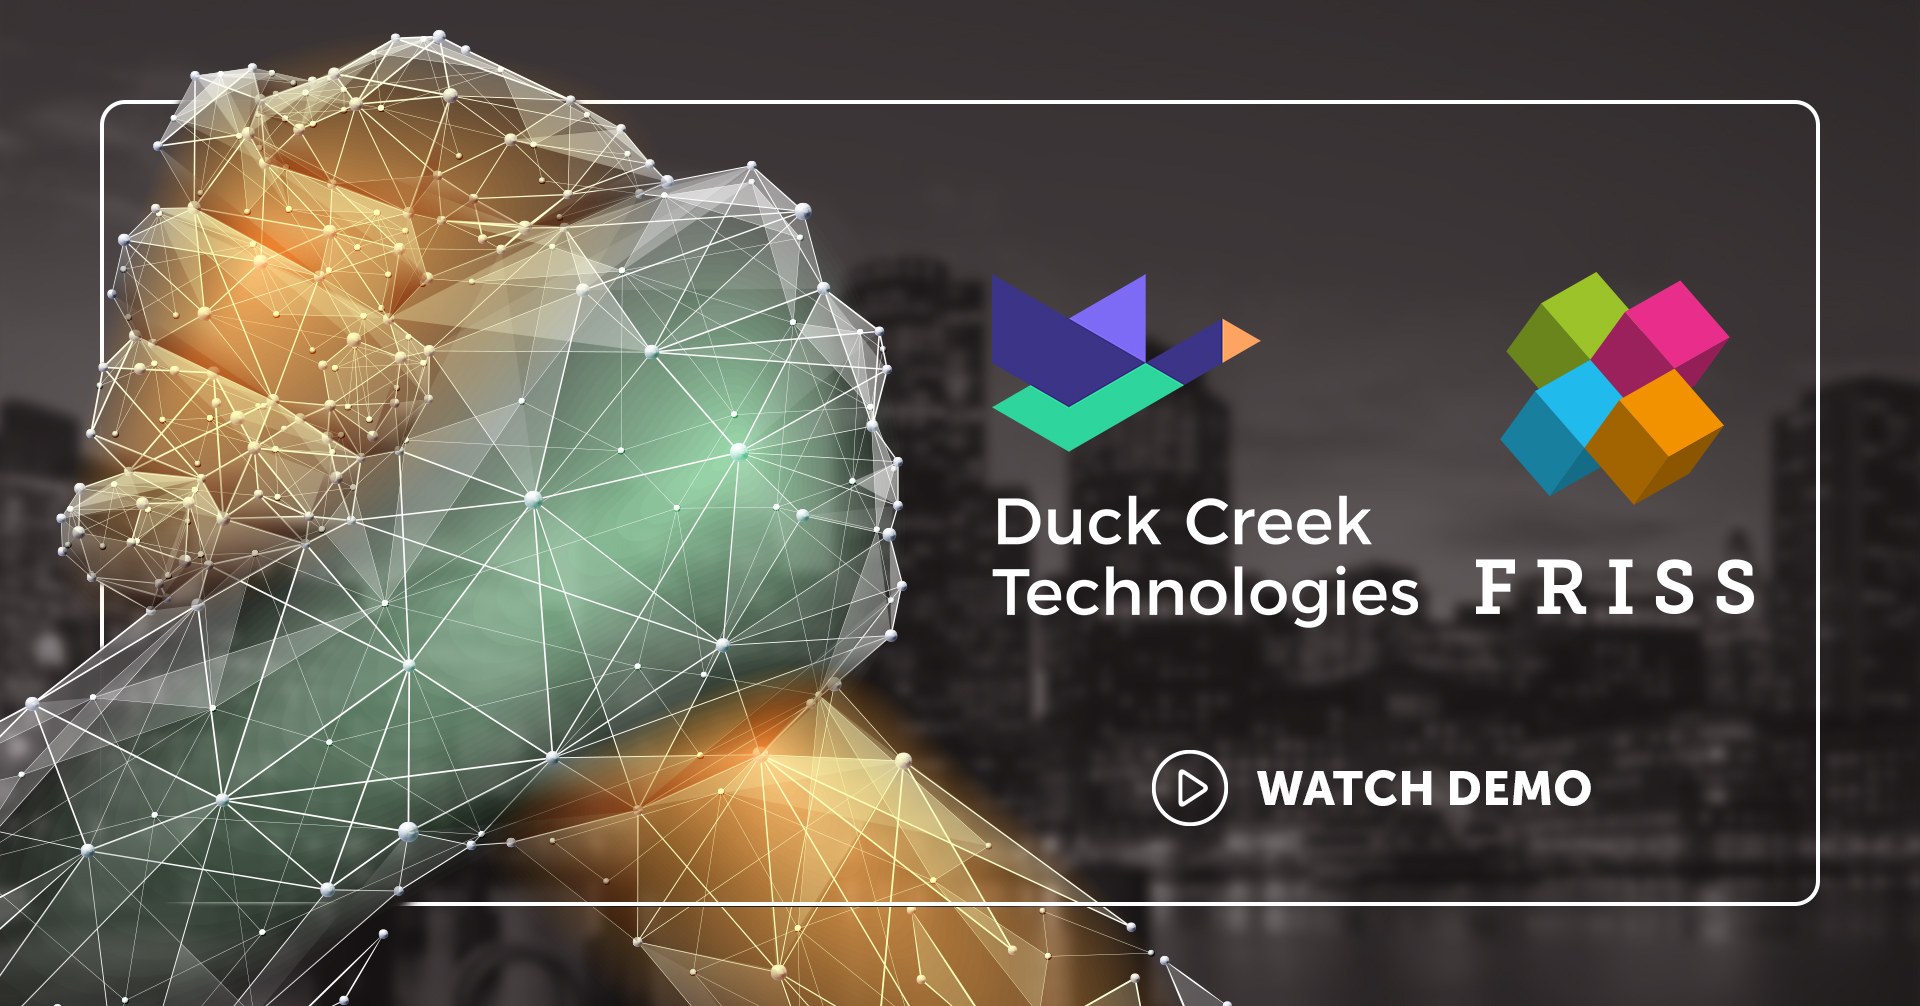 Duck Creek Partnership Image with play button